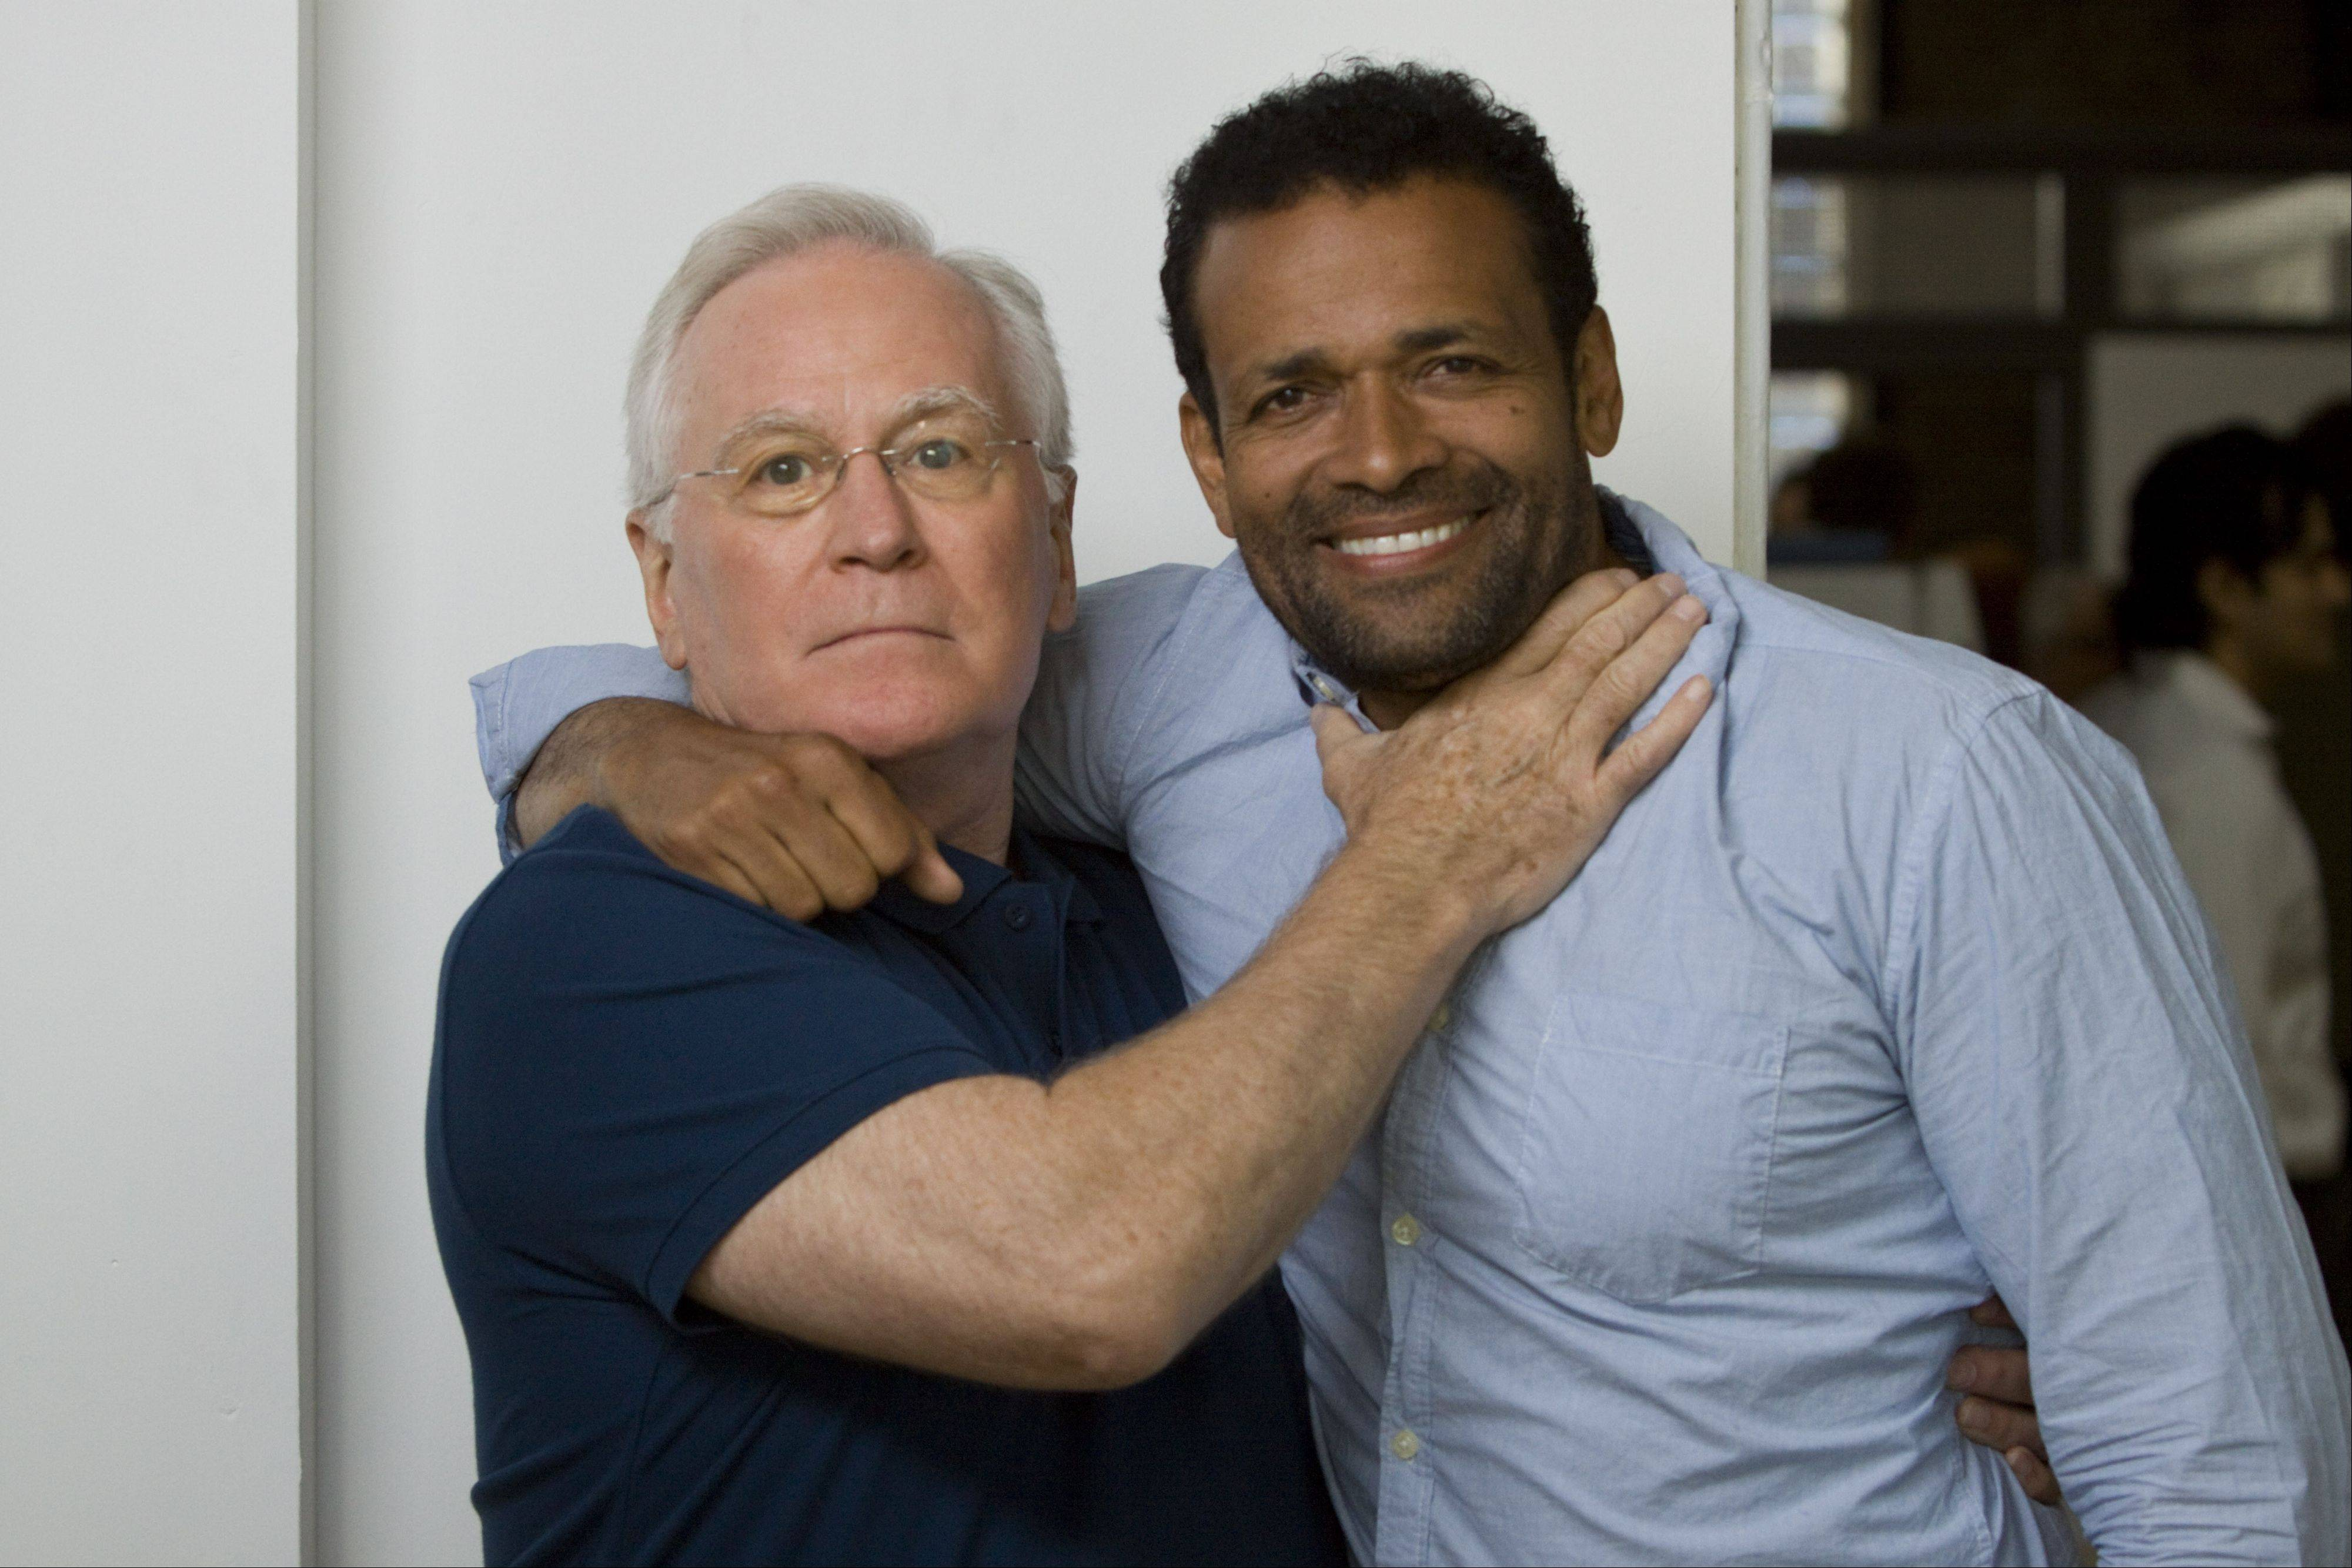 """Boss"" actor and former radio DJ Doug James, of Park Ridge, clowns around with Mario Van Peebles, right, one of the show's directors, while filming the second season this summer in Chicago."